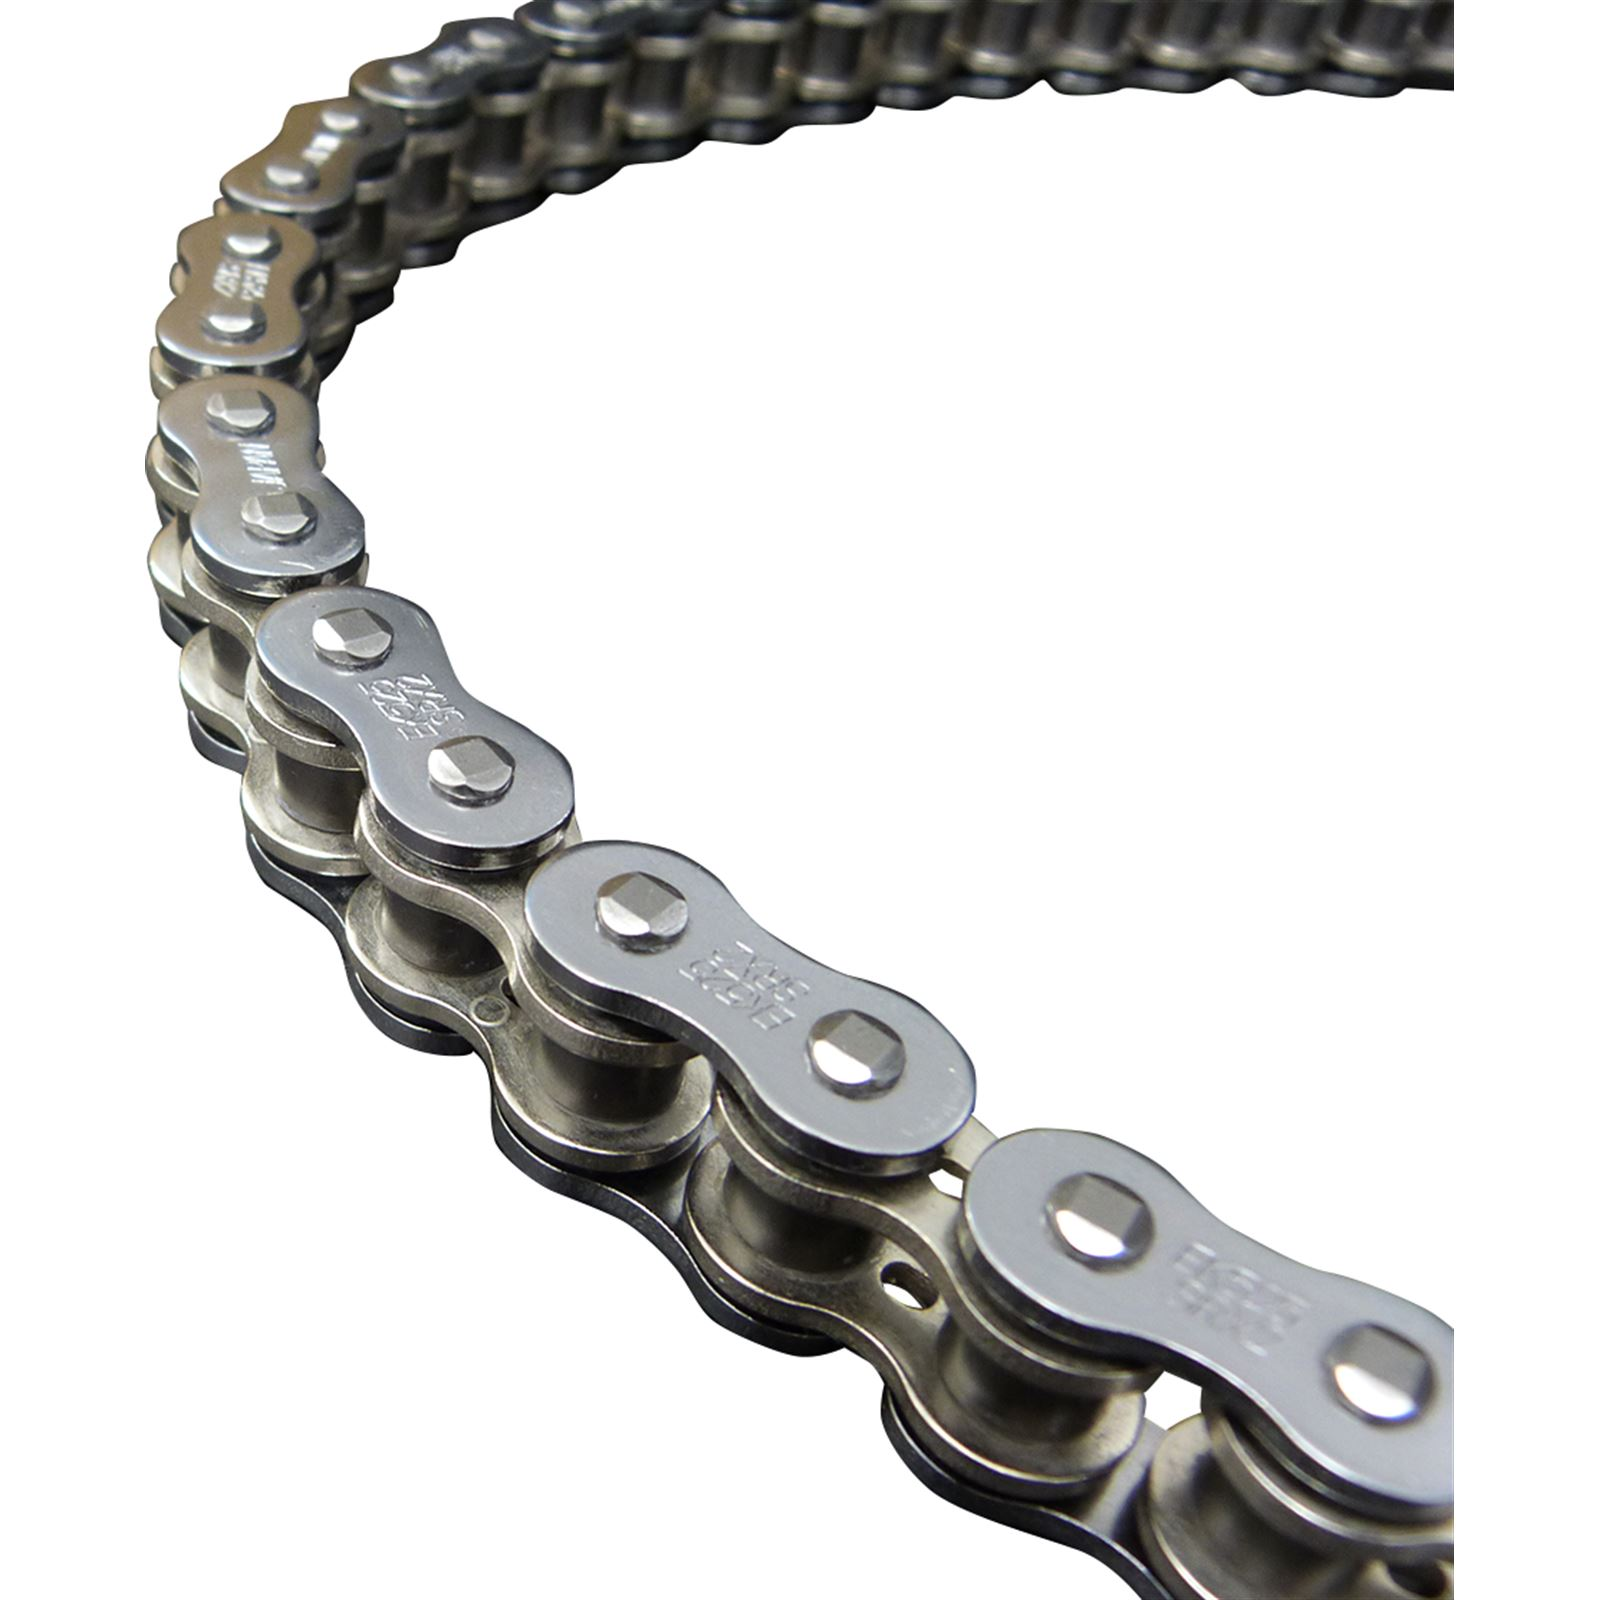 EK 520 SRX2 - Chain - 116 Links